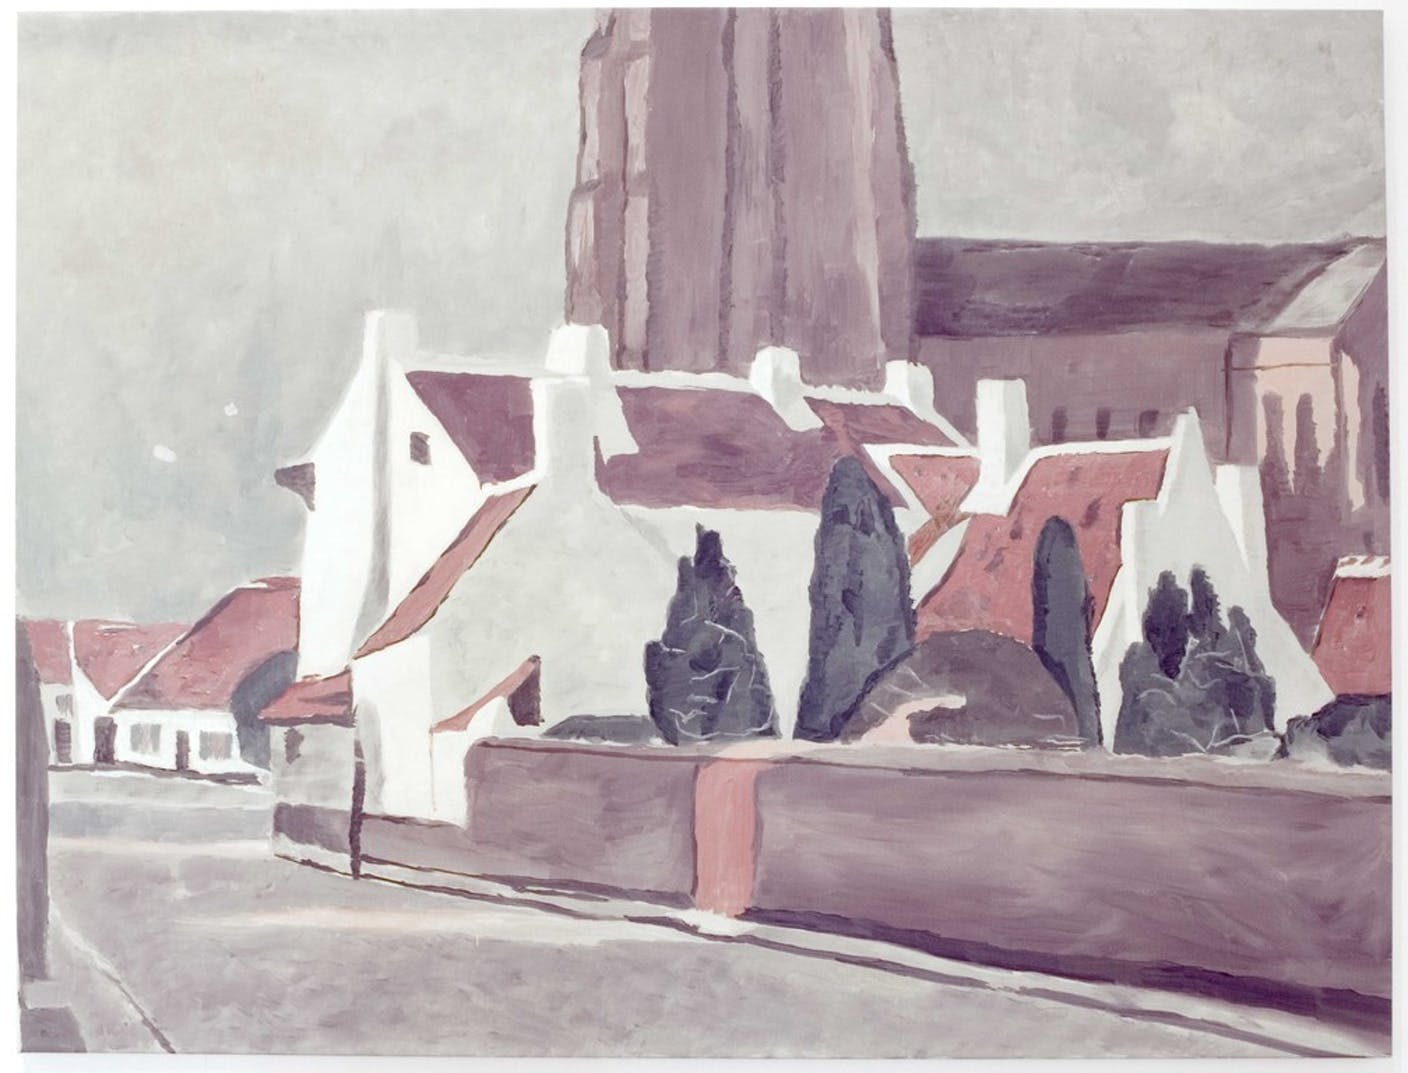 Luc Tuymans, Flemish Village 1995.  Collection MuHKA, Antwerp